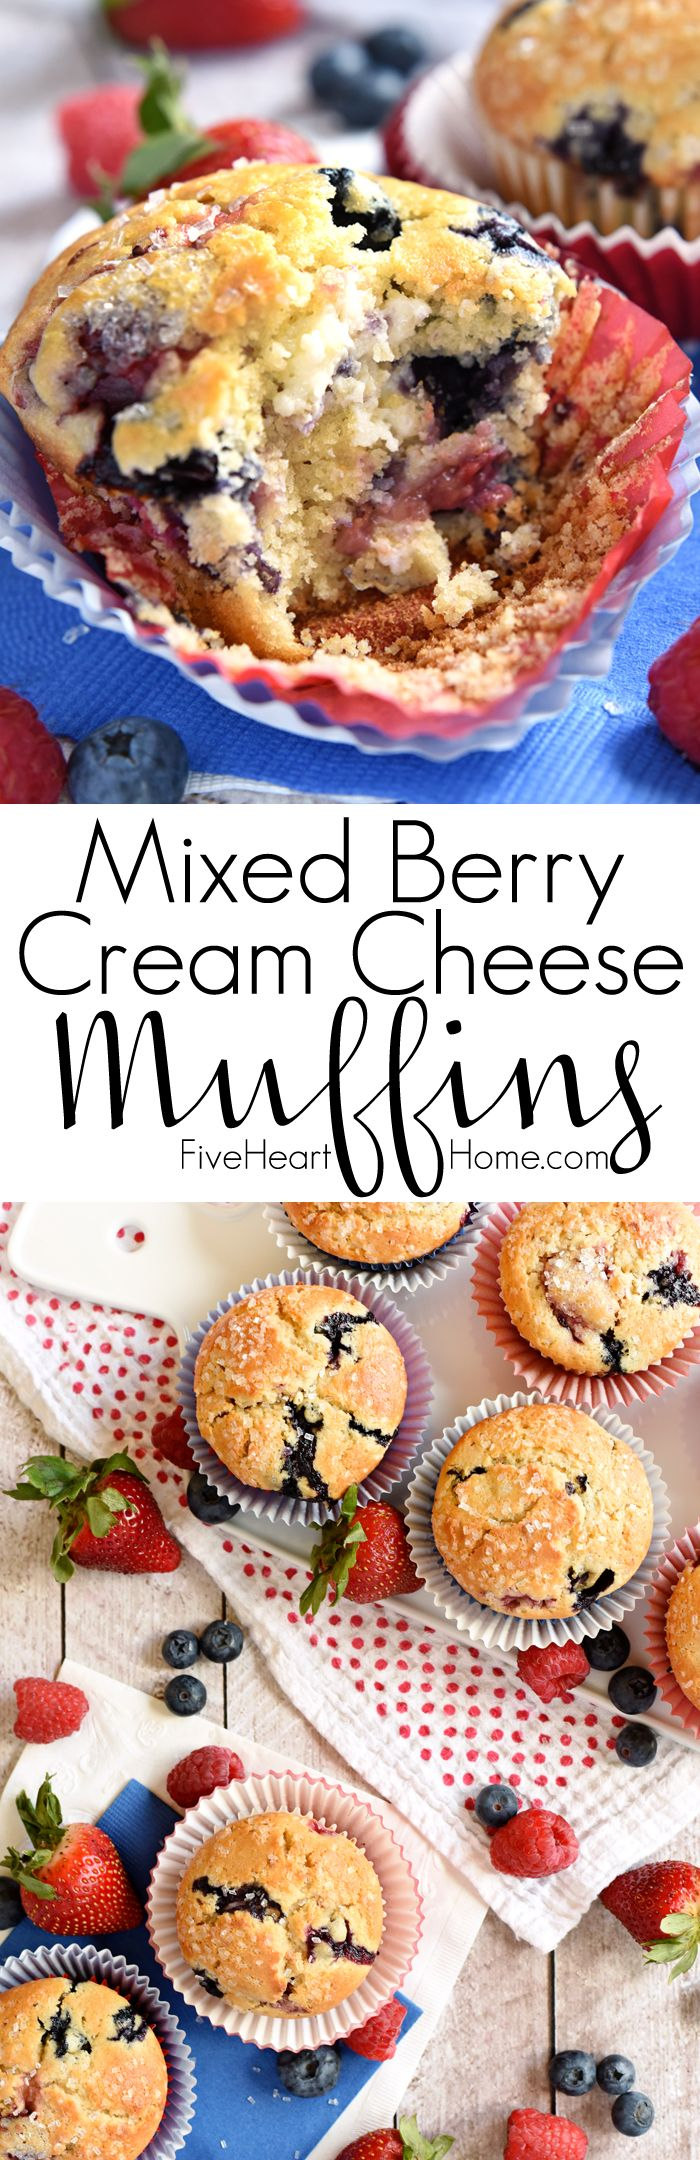 Mixed Berry Cream Cheese Muffins ~ bursting with fresh strawberries, blueberries, and raspberries…as well as a surprise swirl of cream cheese filling! | FiveHeartHome.com